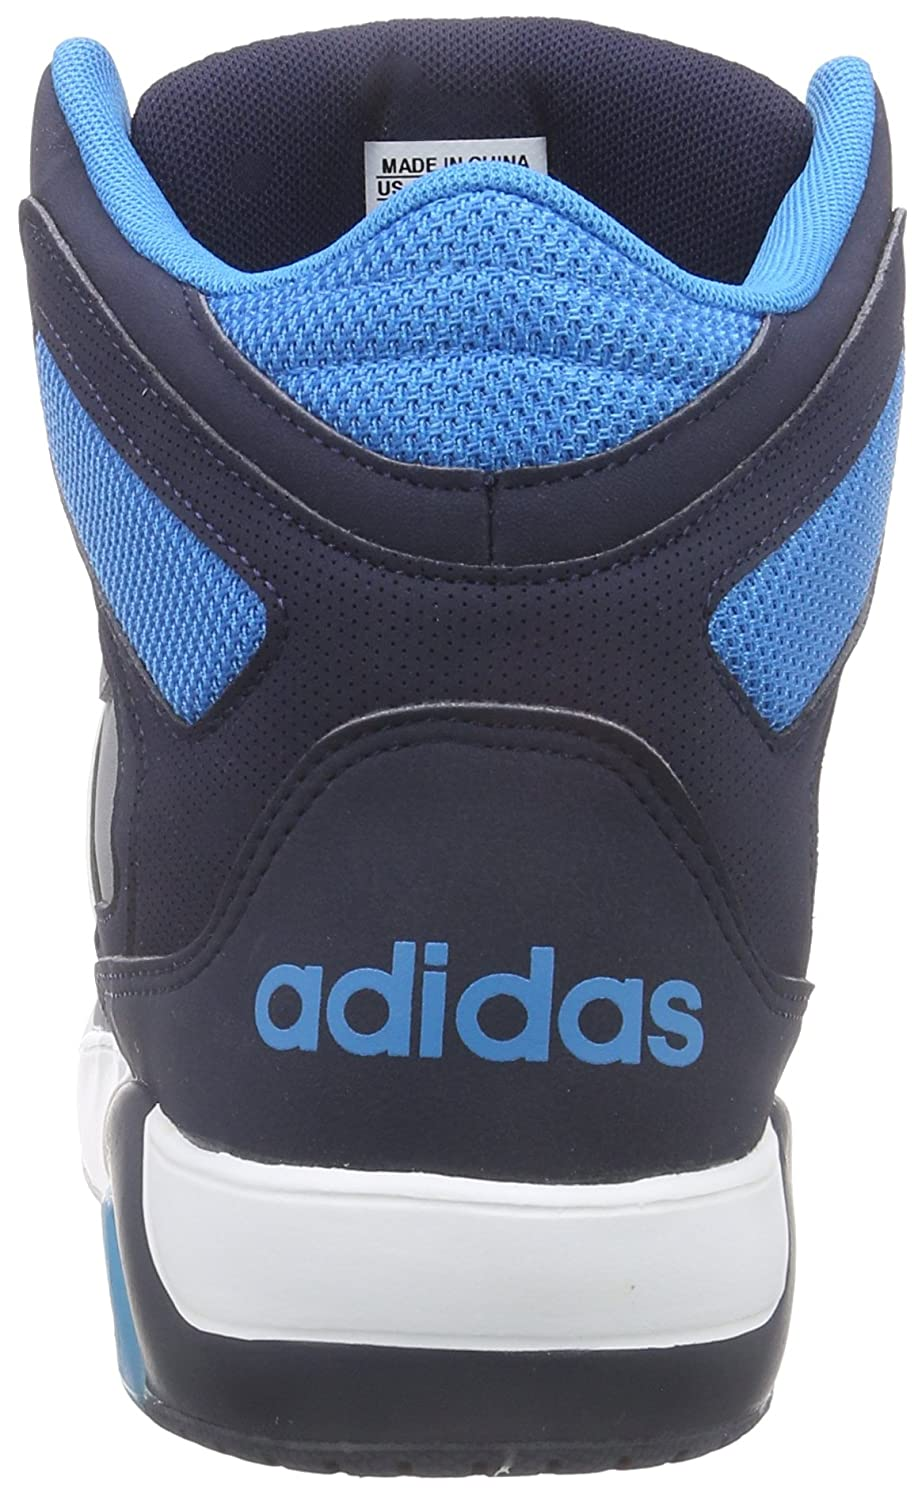 Adidas Bb9tis UsAmazon Size12 ca Mid F99653 Mens Shoes 2WDH9EIY